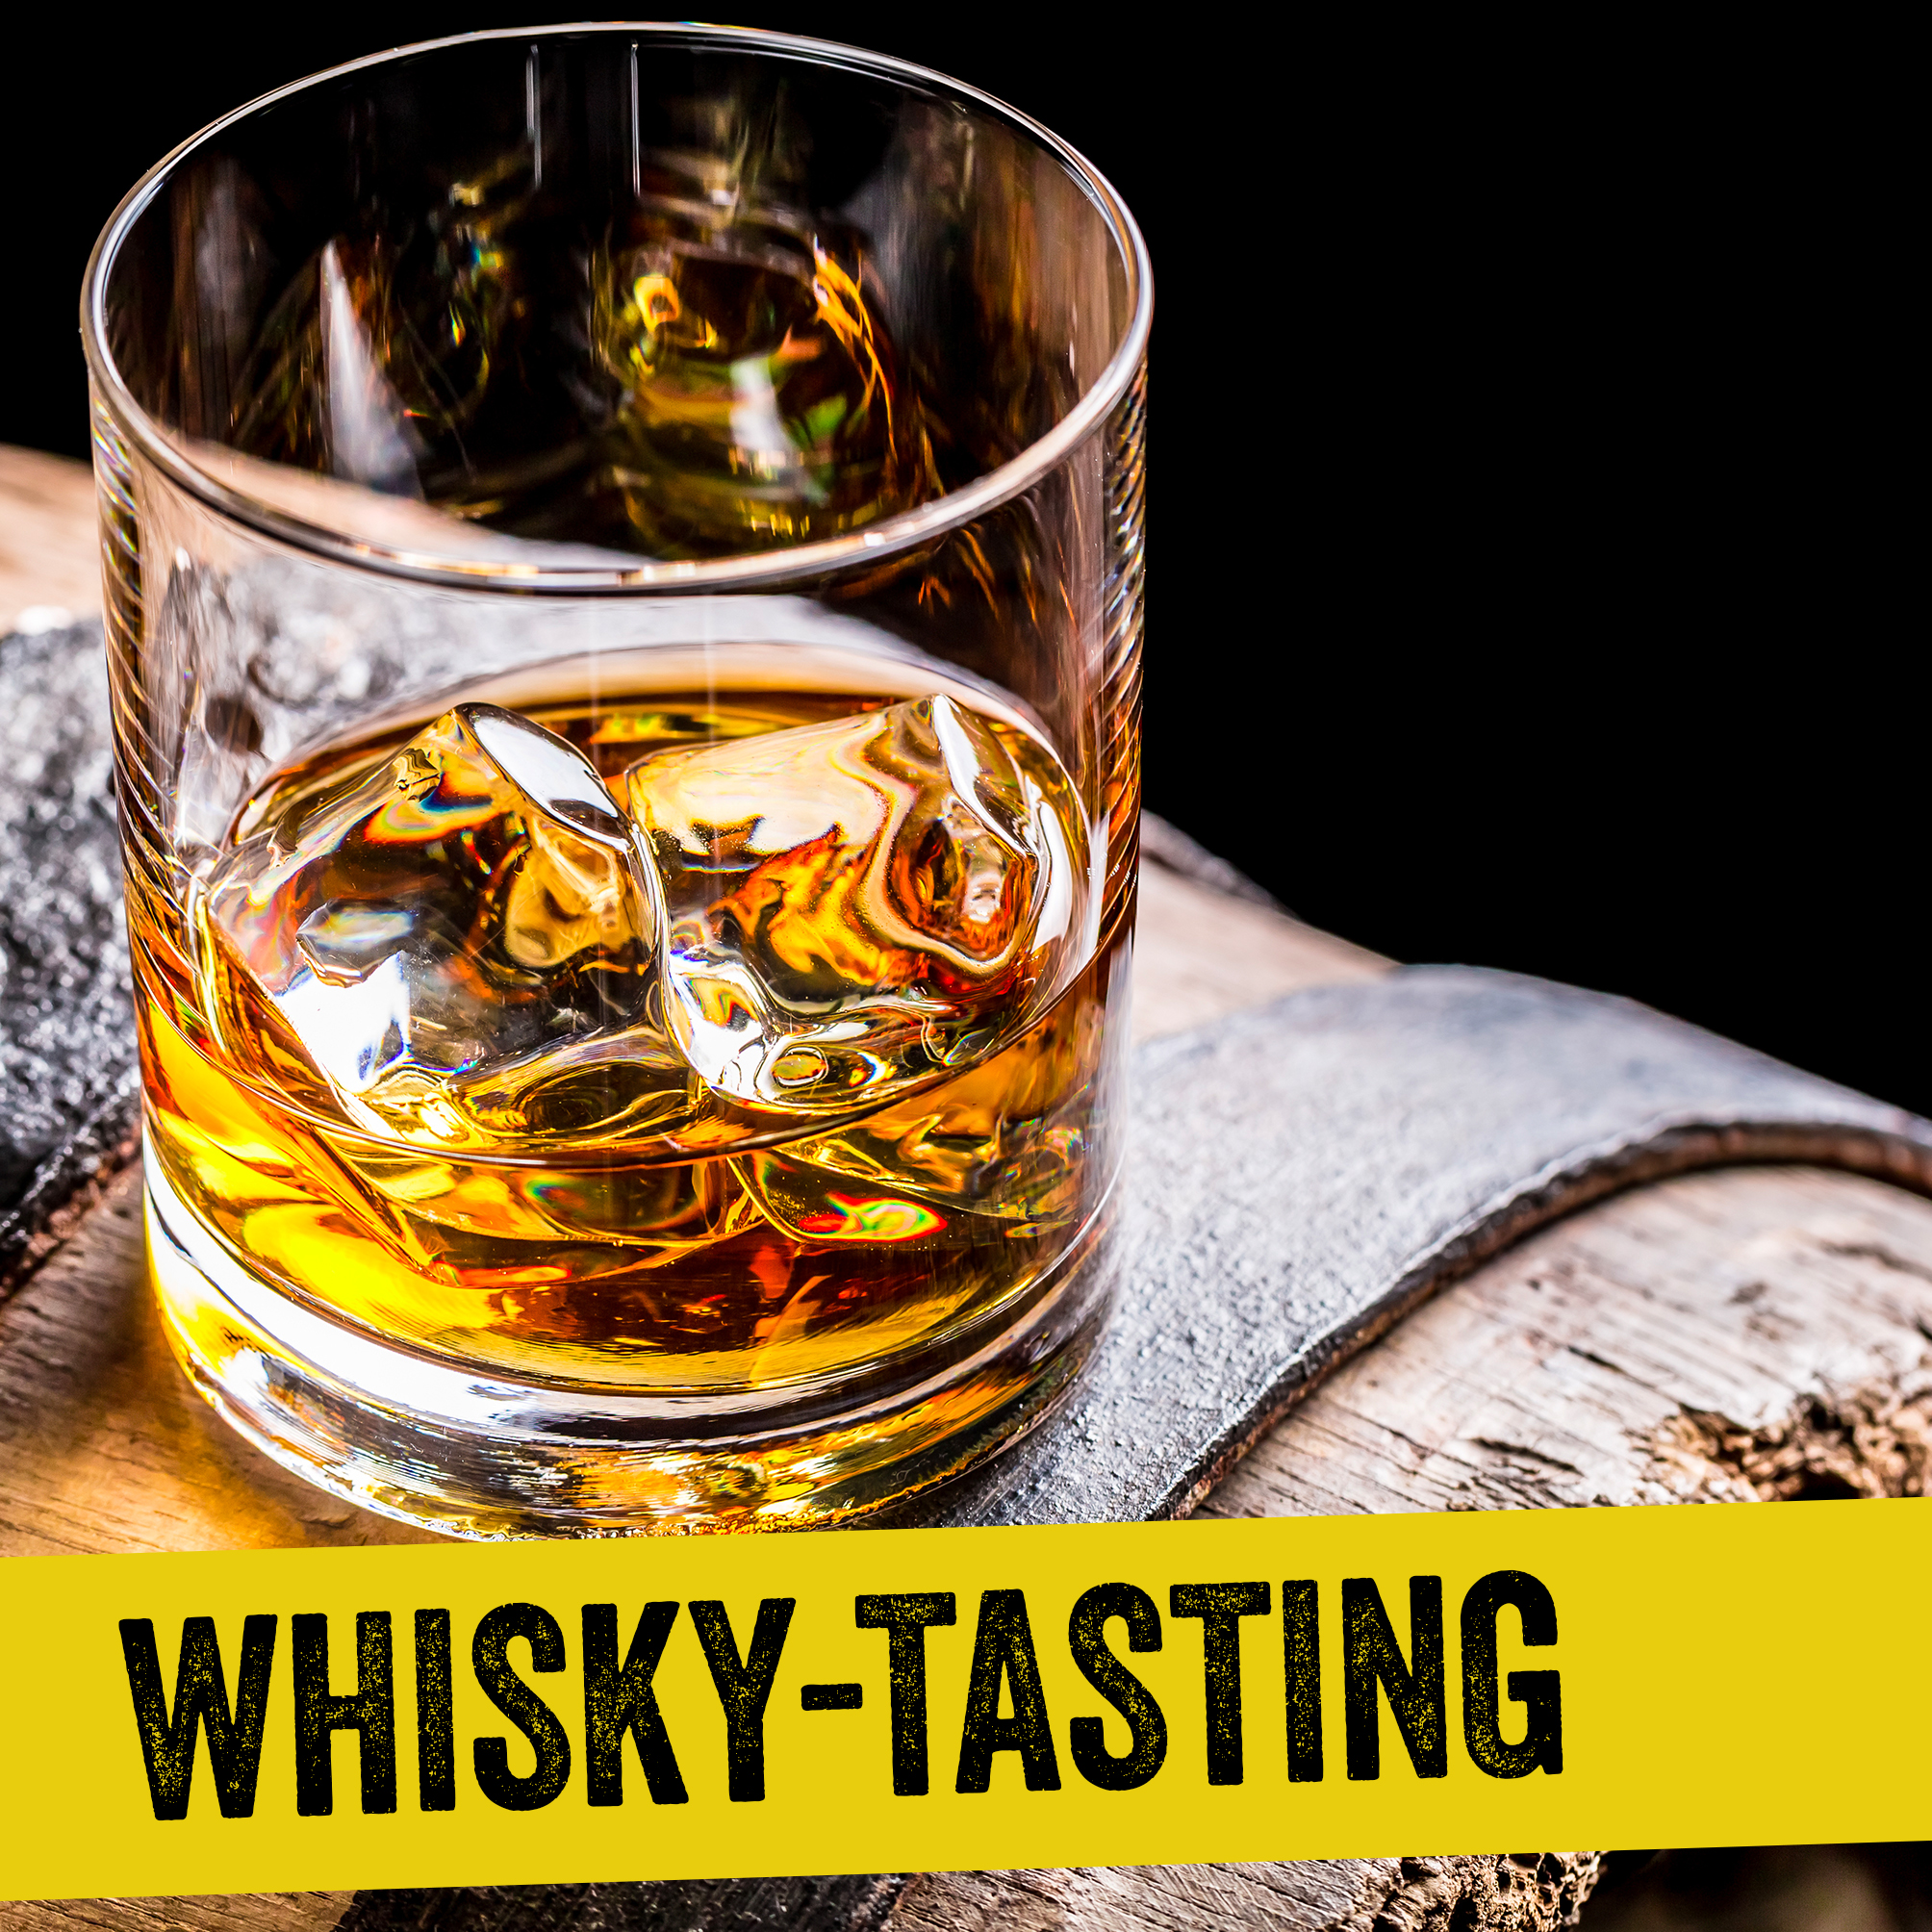 LEARNING BY DRINKING: Whisky-Tasting 12.11.2021